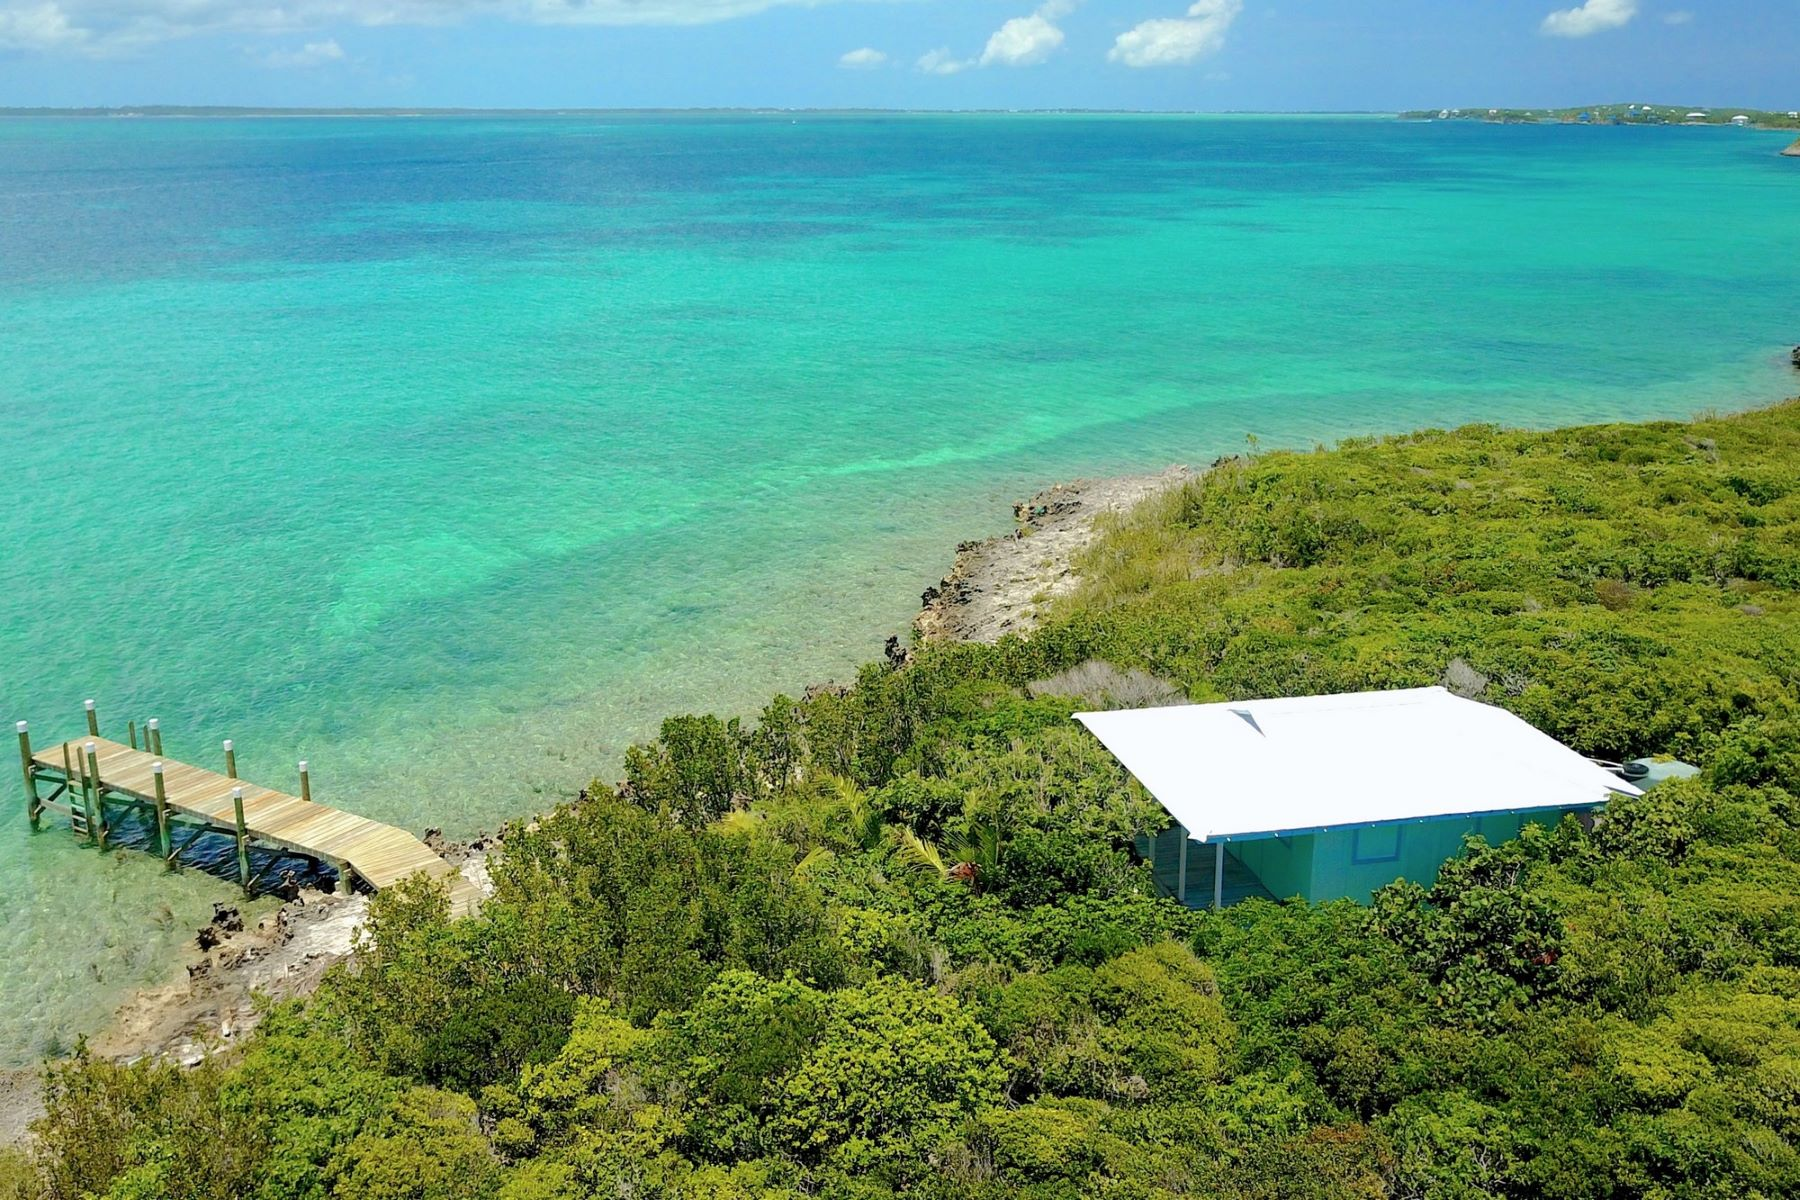 Land for Sale at Seasound Tilloo Cay, Abaco Bahamas